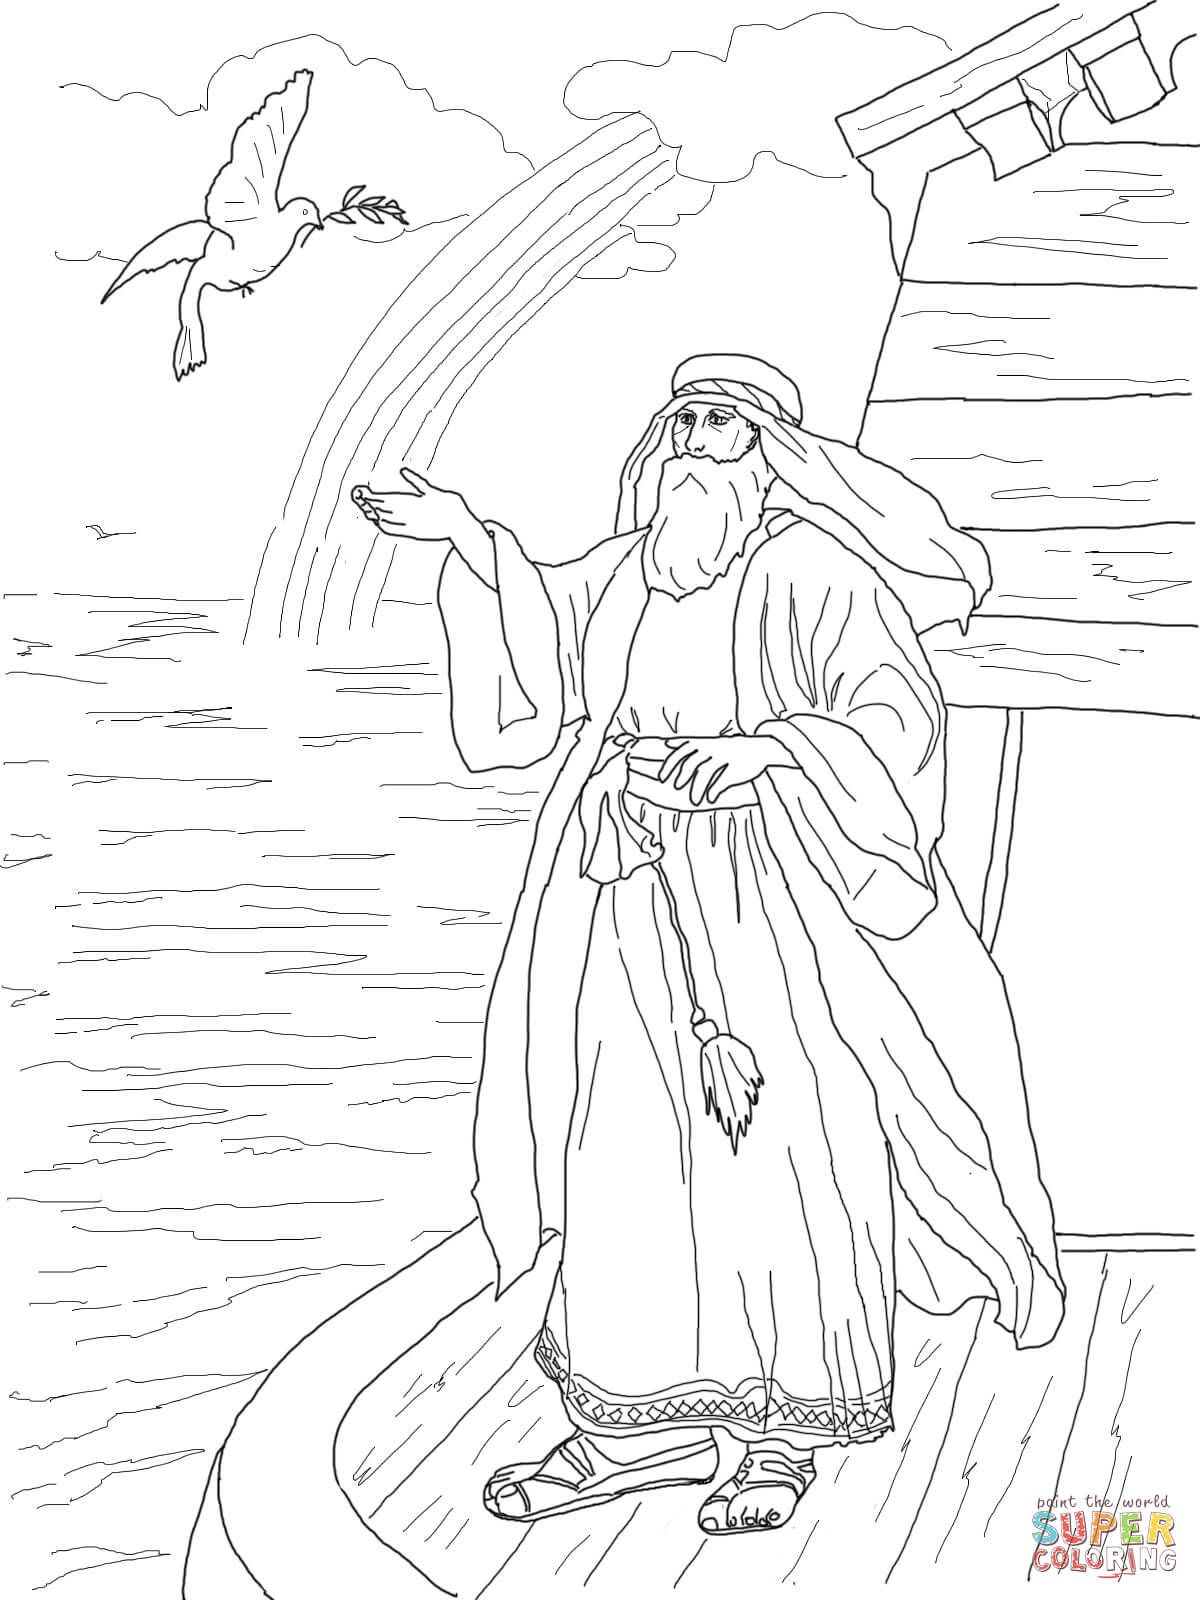 Noah's Dove Returns with the Olive Leaf coloring page